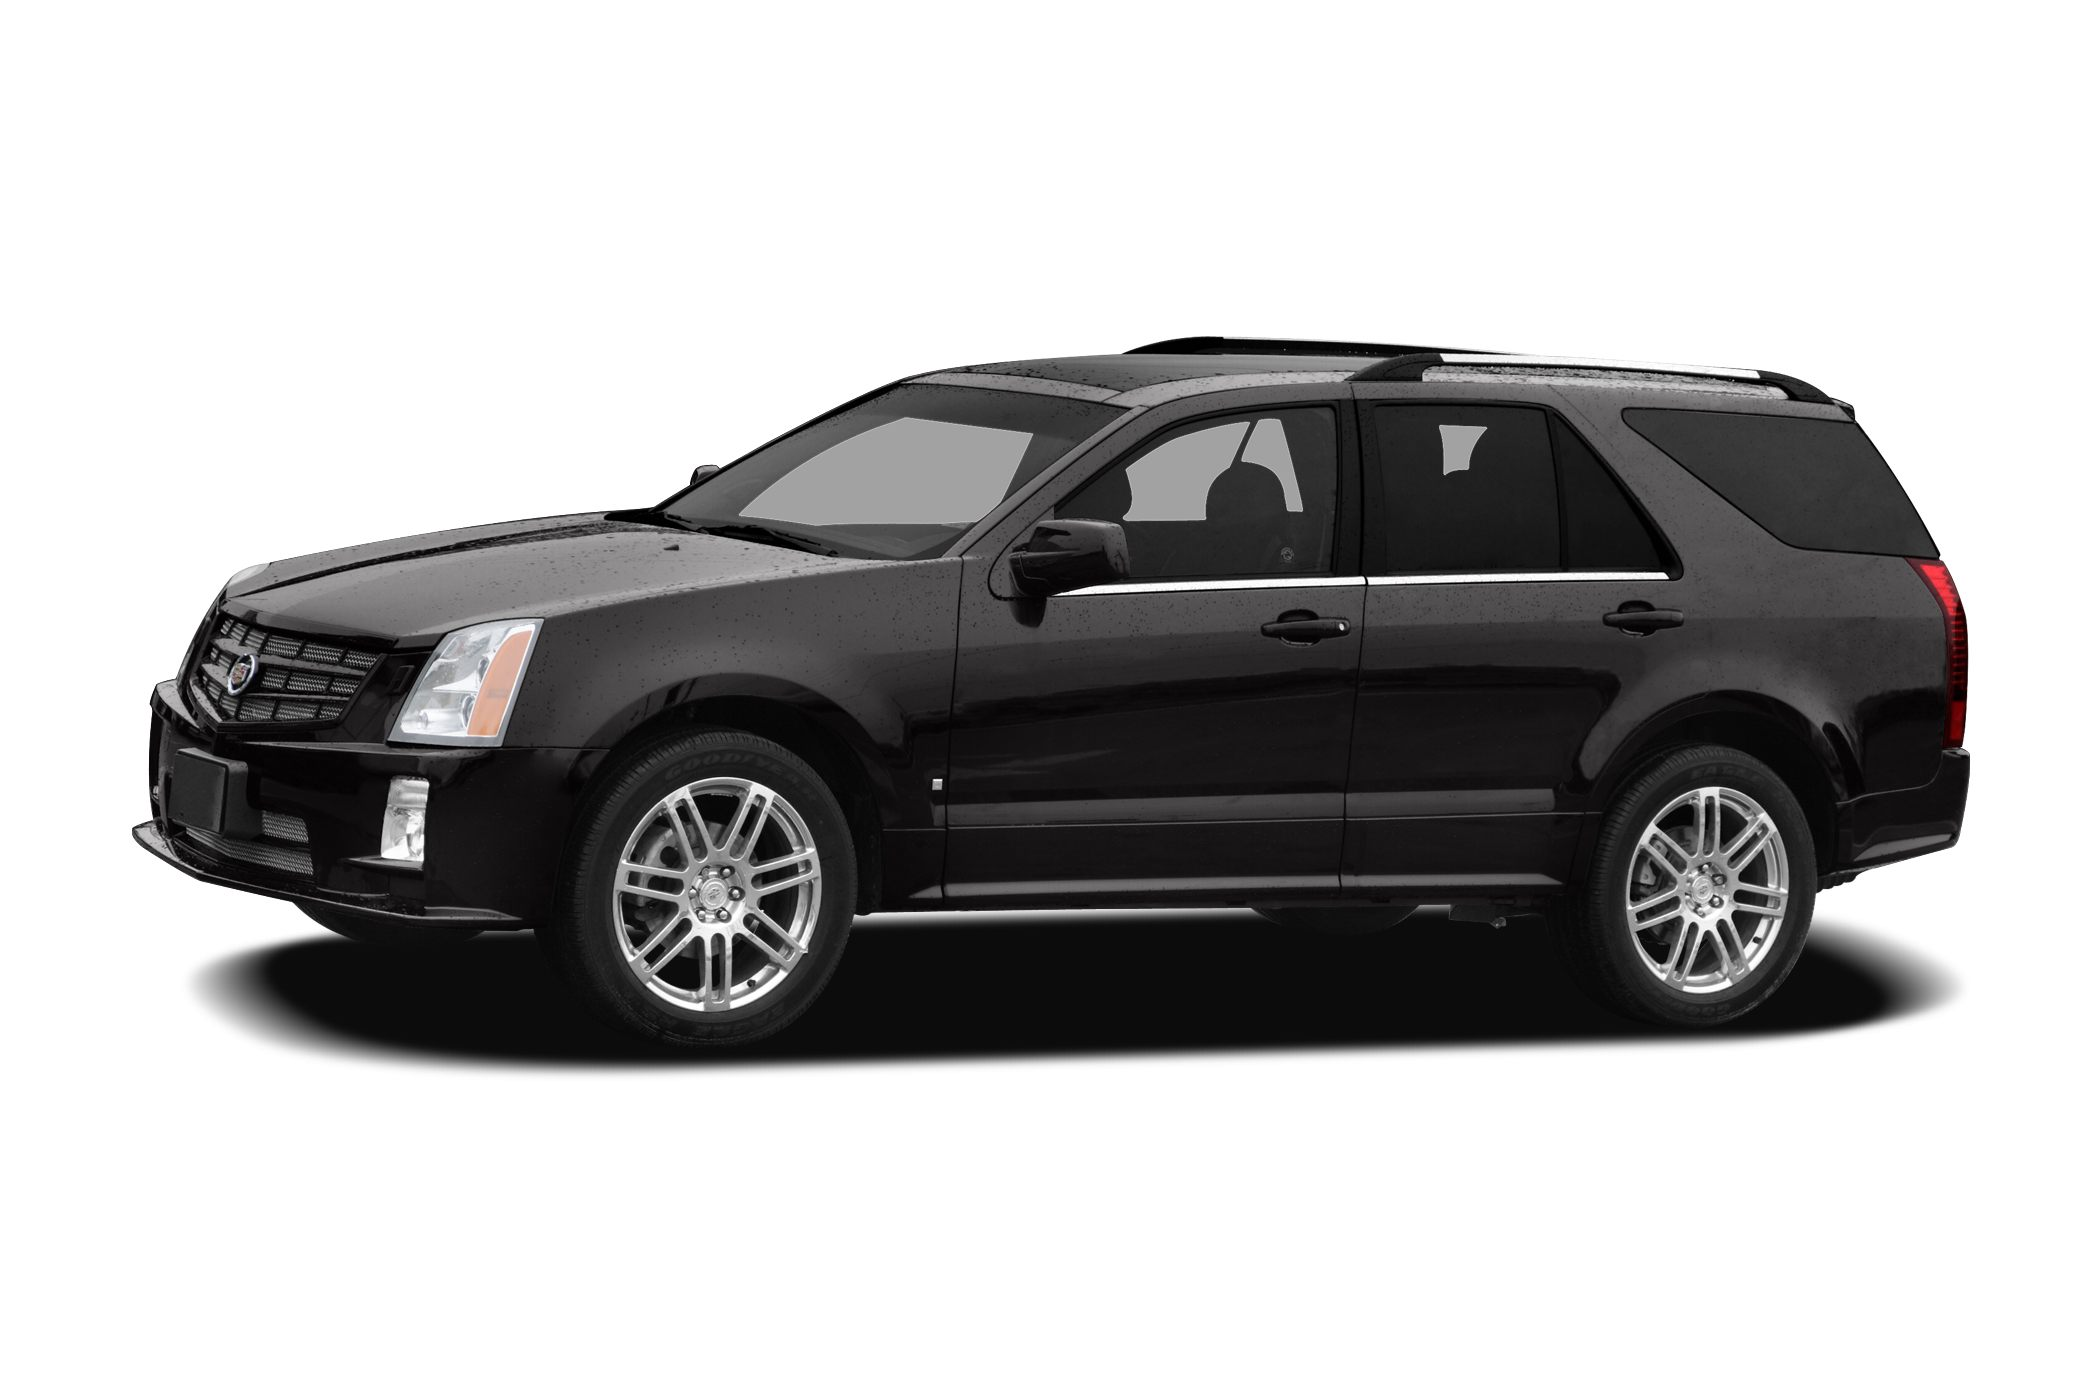 2007 Cadillac SRX V6 SUV for sale in Alexandria for $12,000 with 107,455 miles